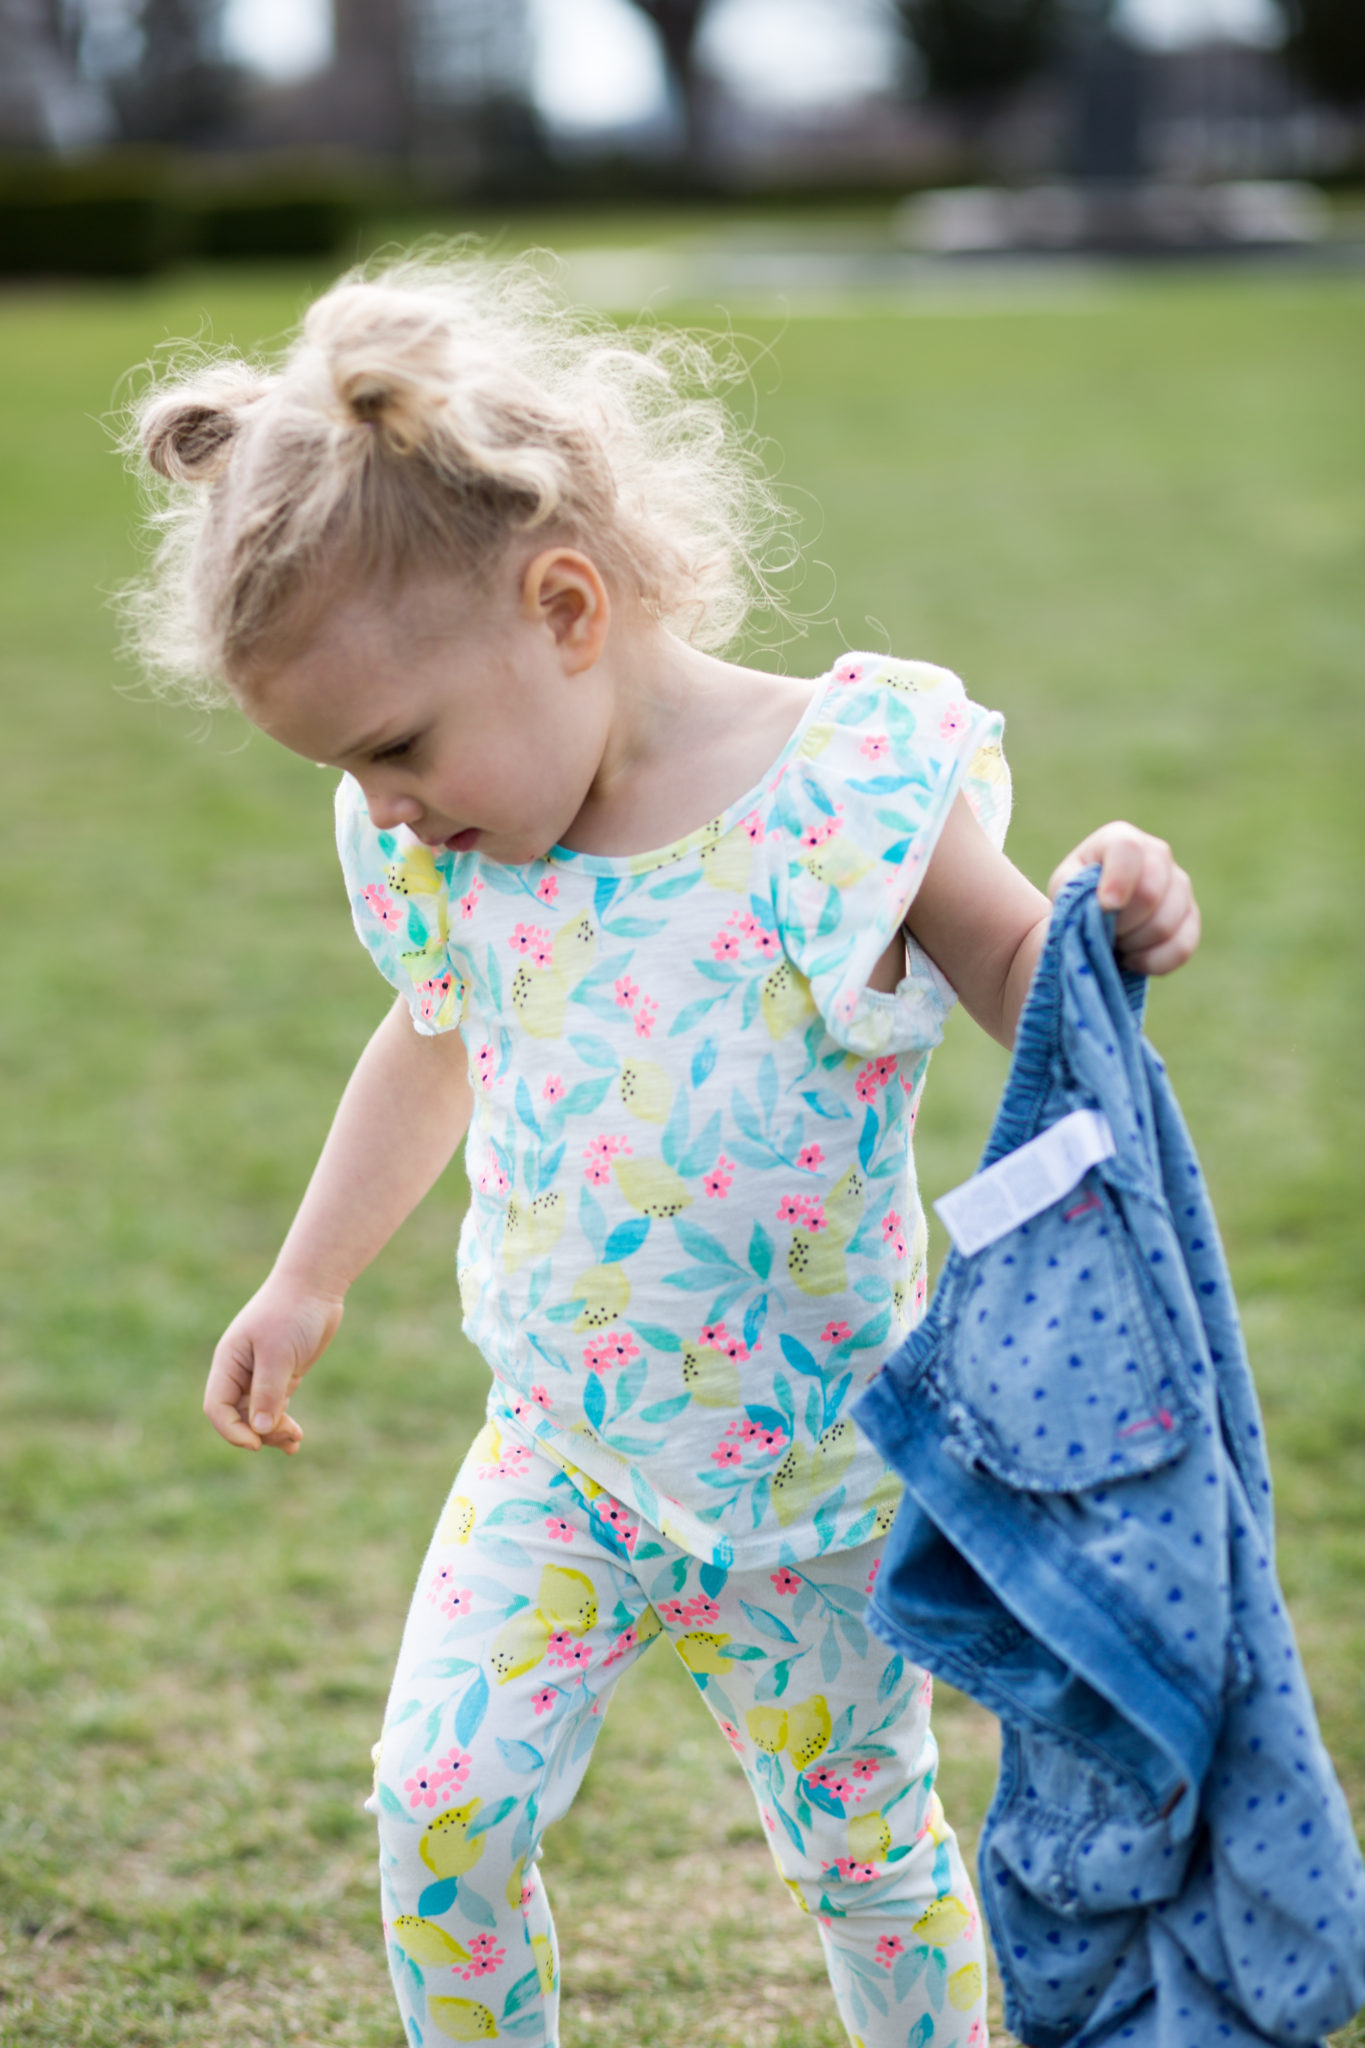 spring outfit ideas for toddler girls | tips for dressing your toddler on allweareblog.com